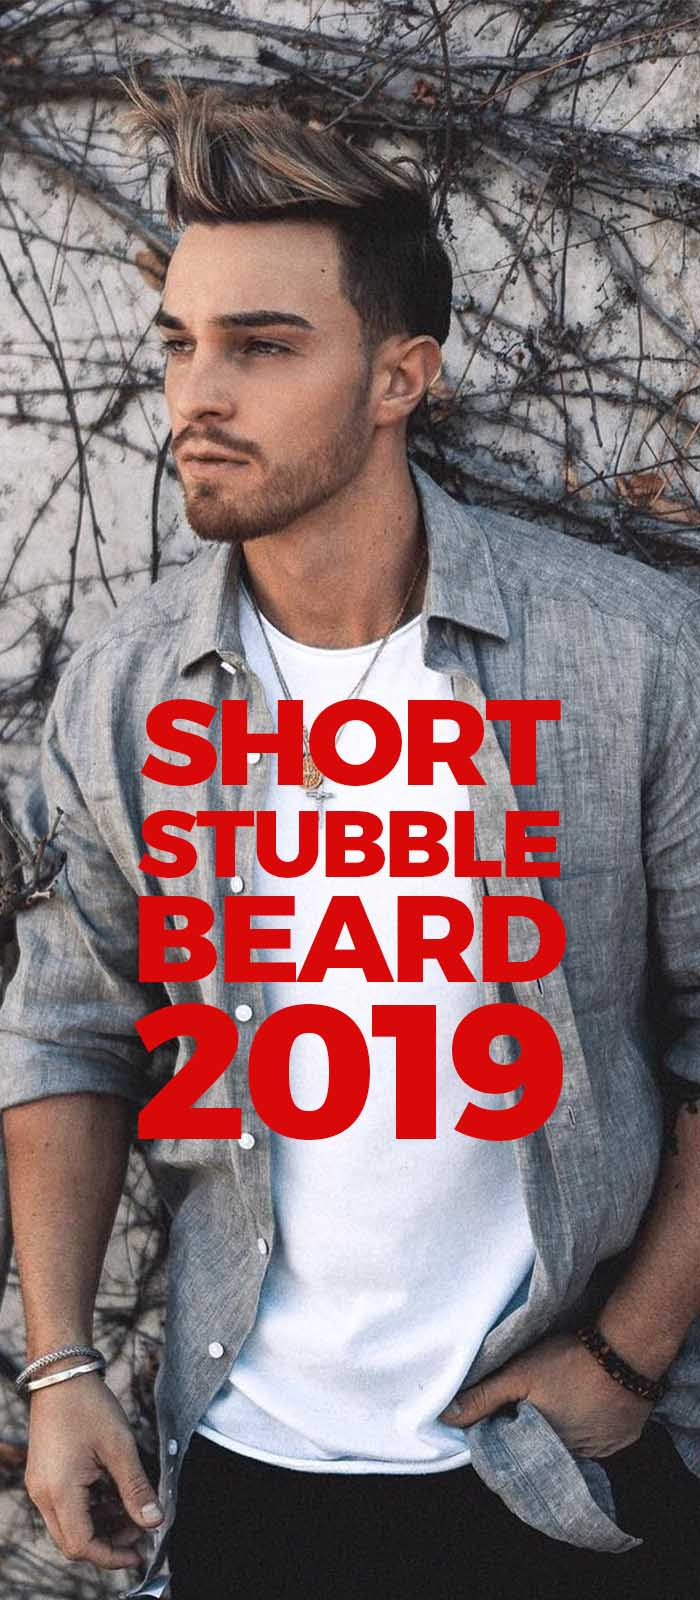 Cool and Young Short Stubble beard style for men!